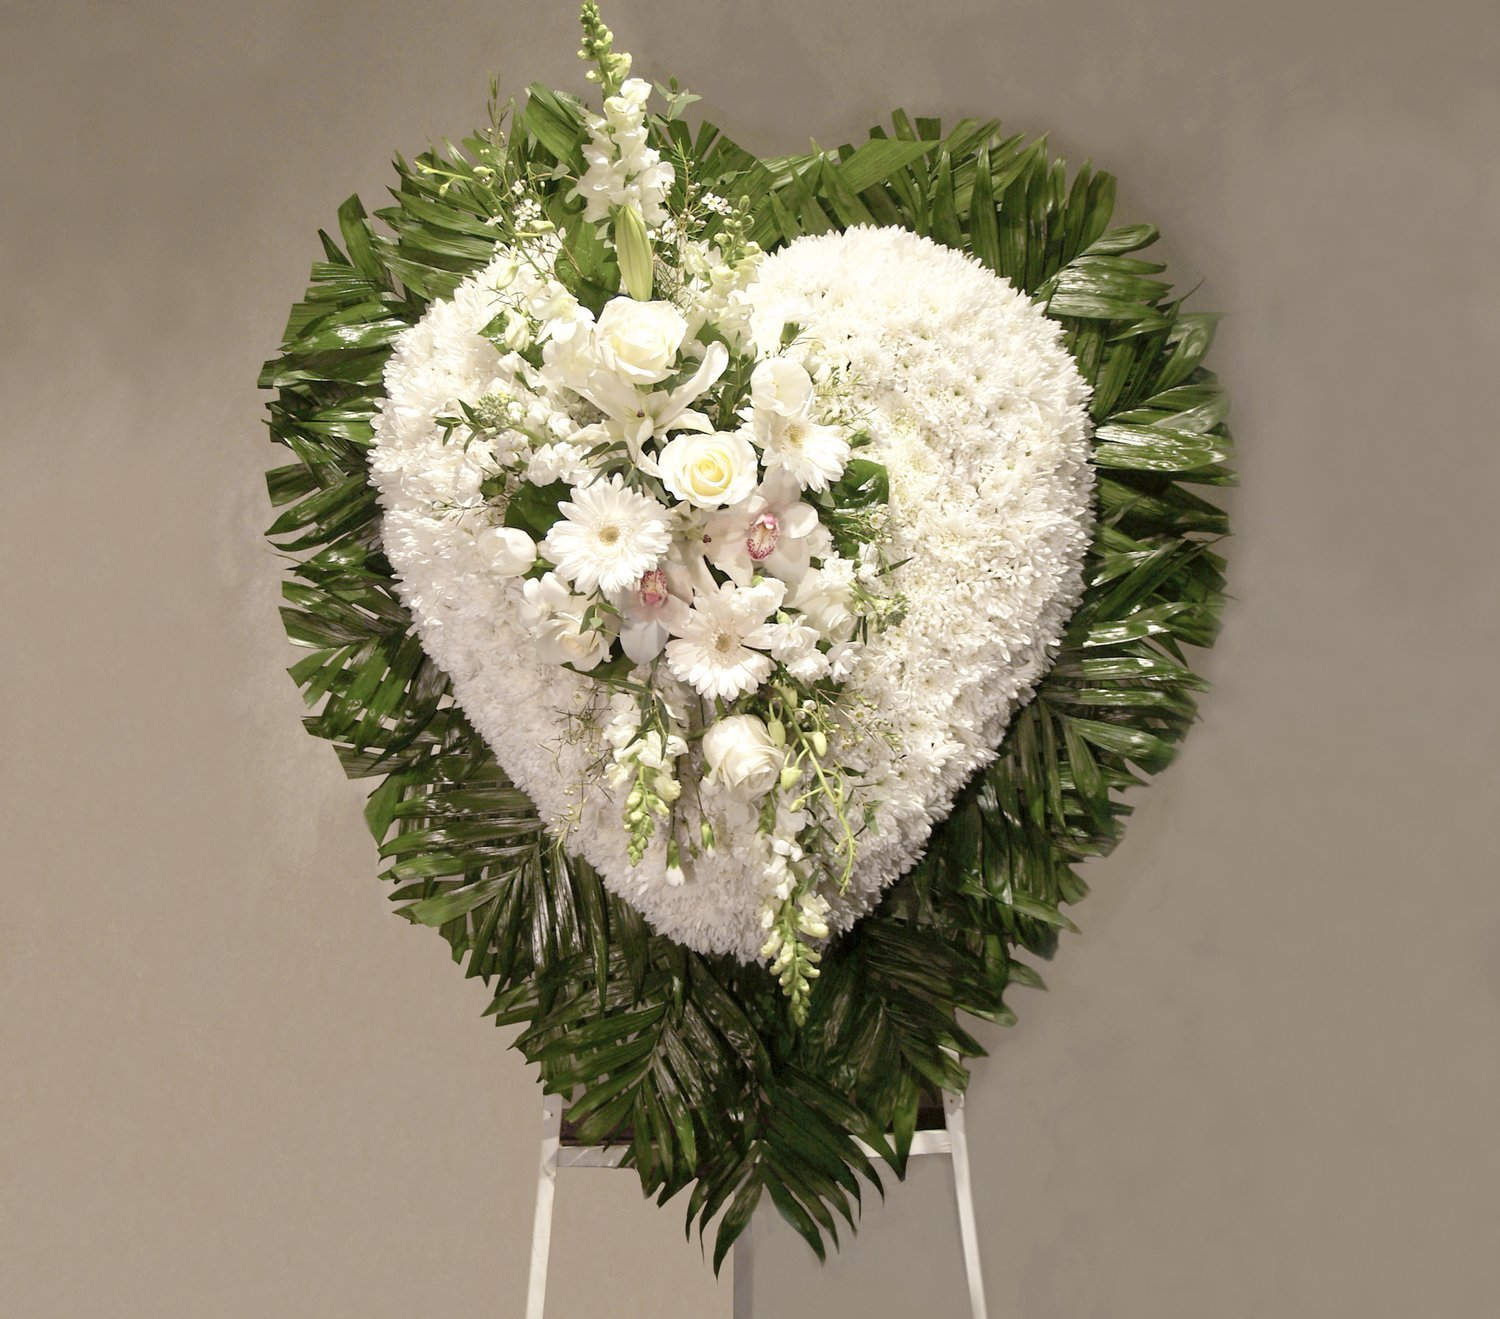 White Flower Heart Cluster With Emerald Border Lofendo Flowers